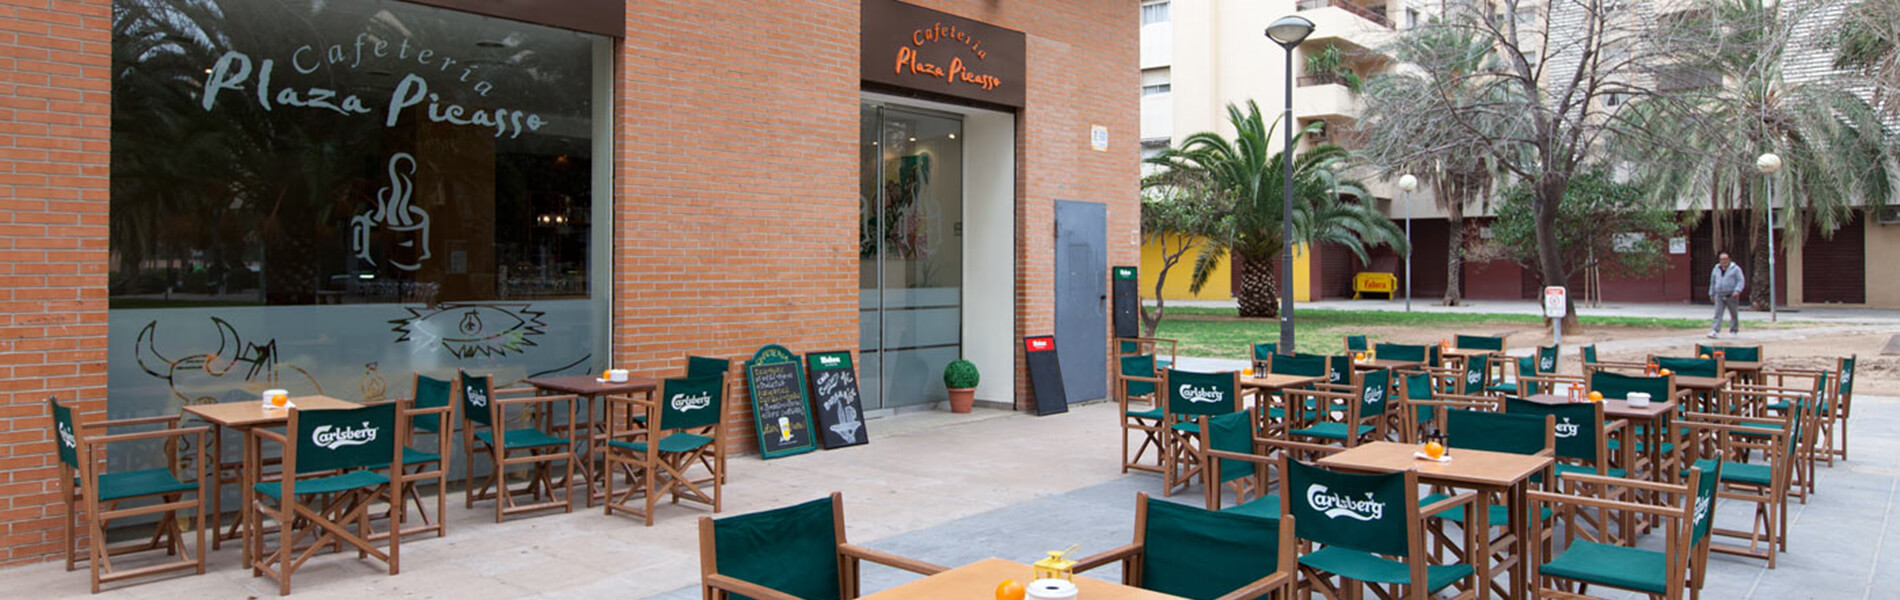 Apartamentos plaza picasso is situated within 1 km of the unique zoo valencia bioparc, and has a number of amenities including a business centre,. Servicios   Apartamentos Plaza Picasso, Valencia.   Web ...